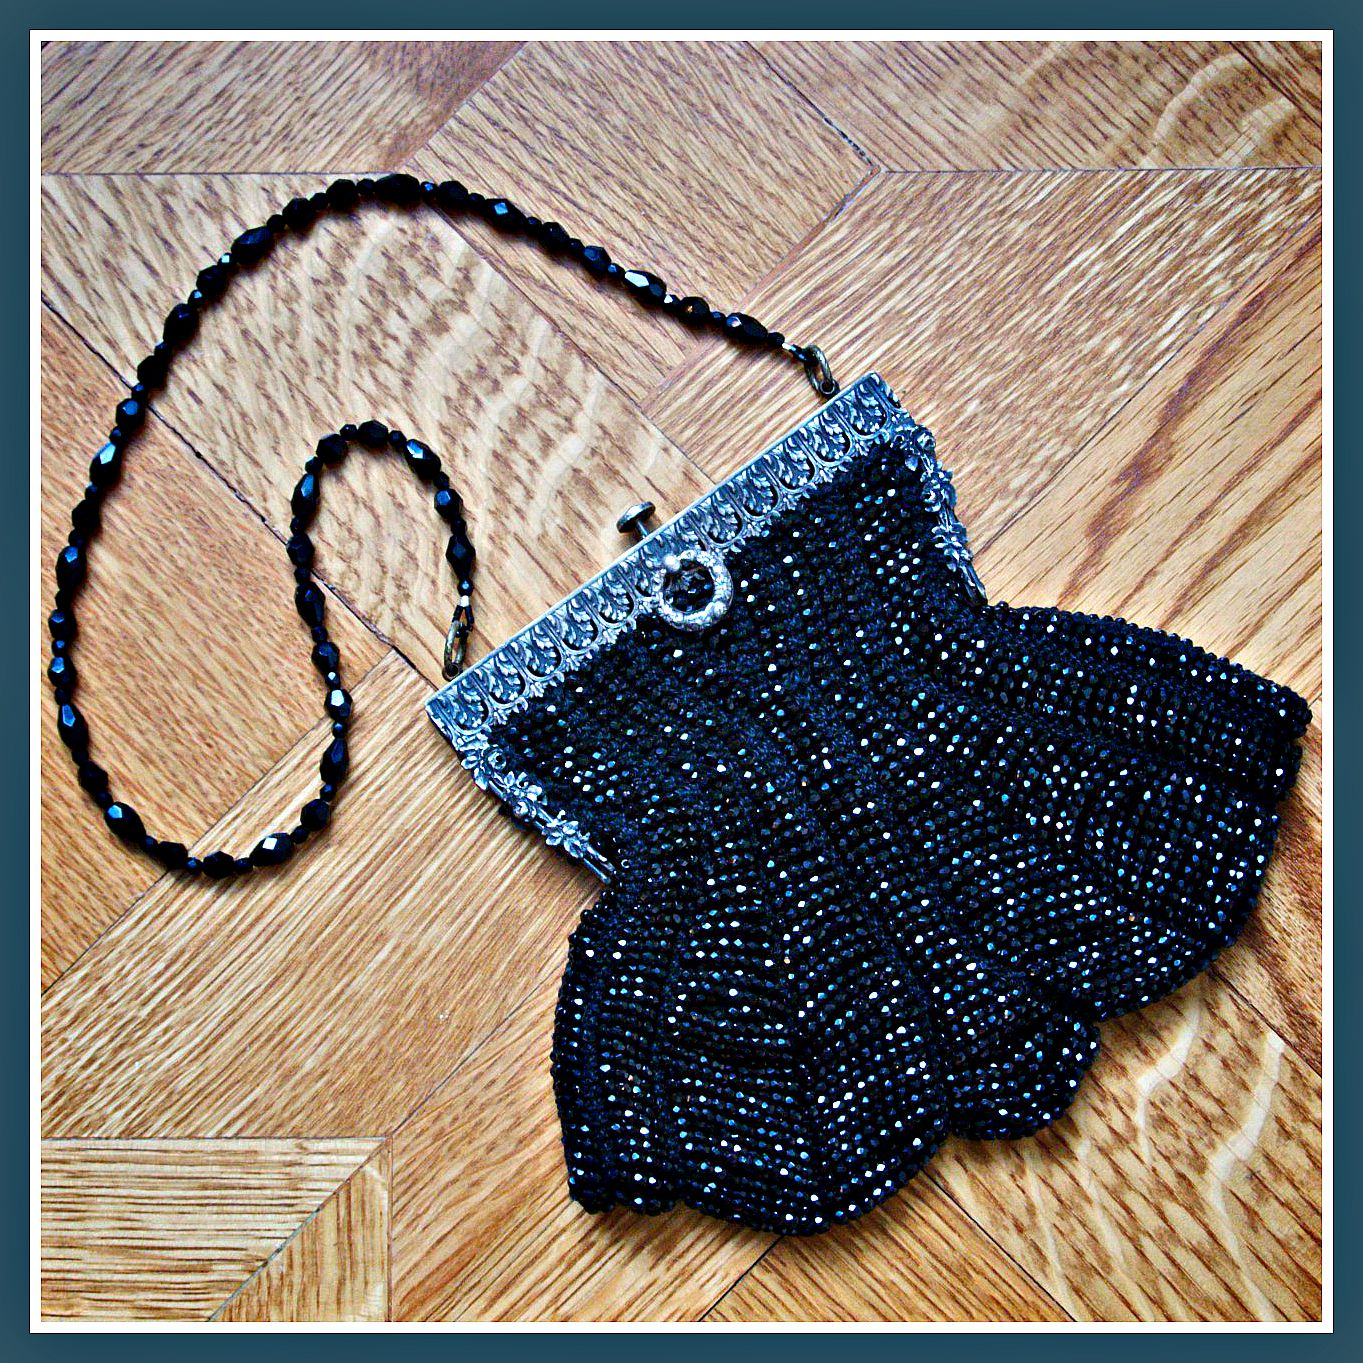 How to Knit A Purse with Antique Style, Cut Glass Beads